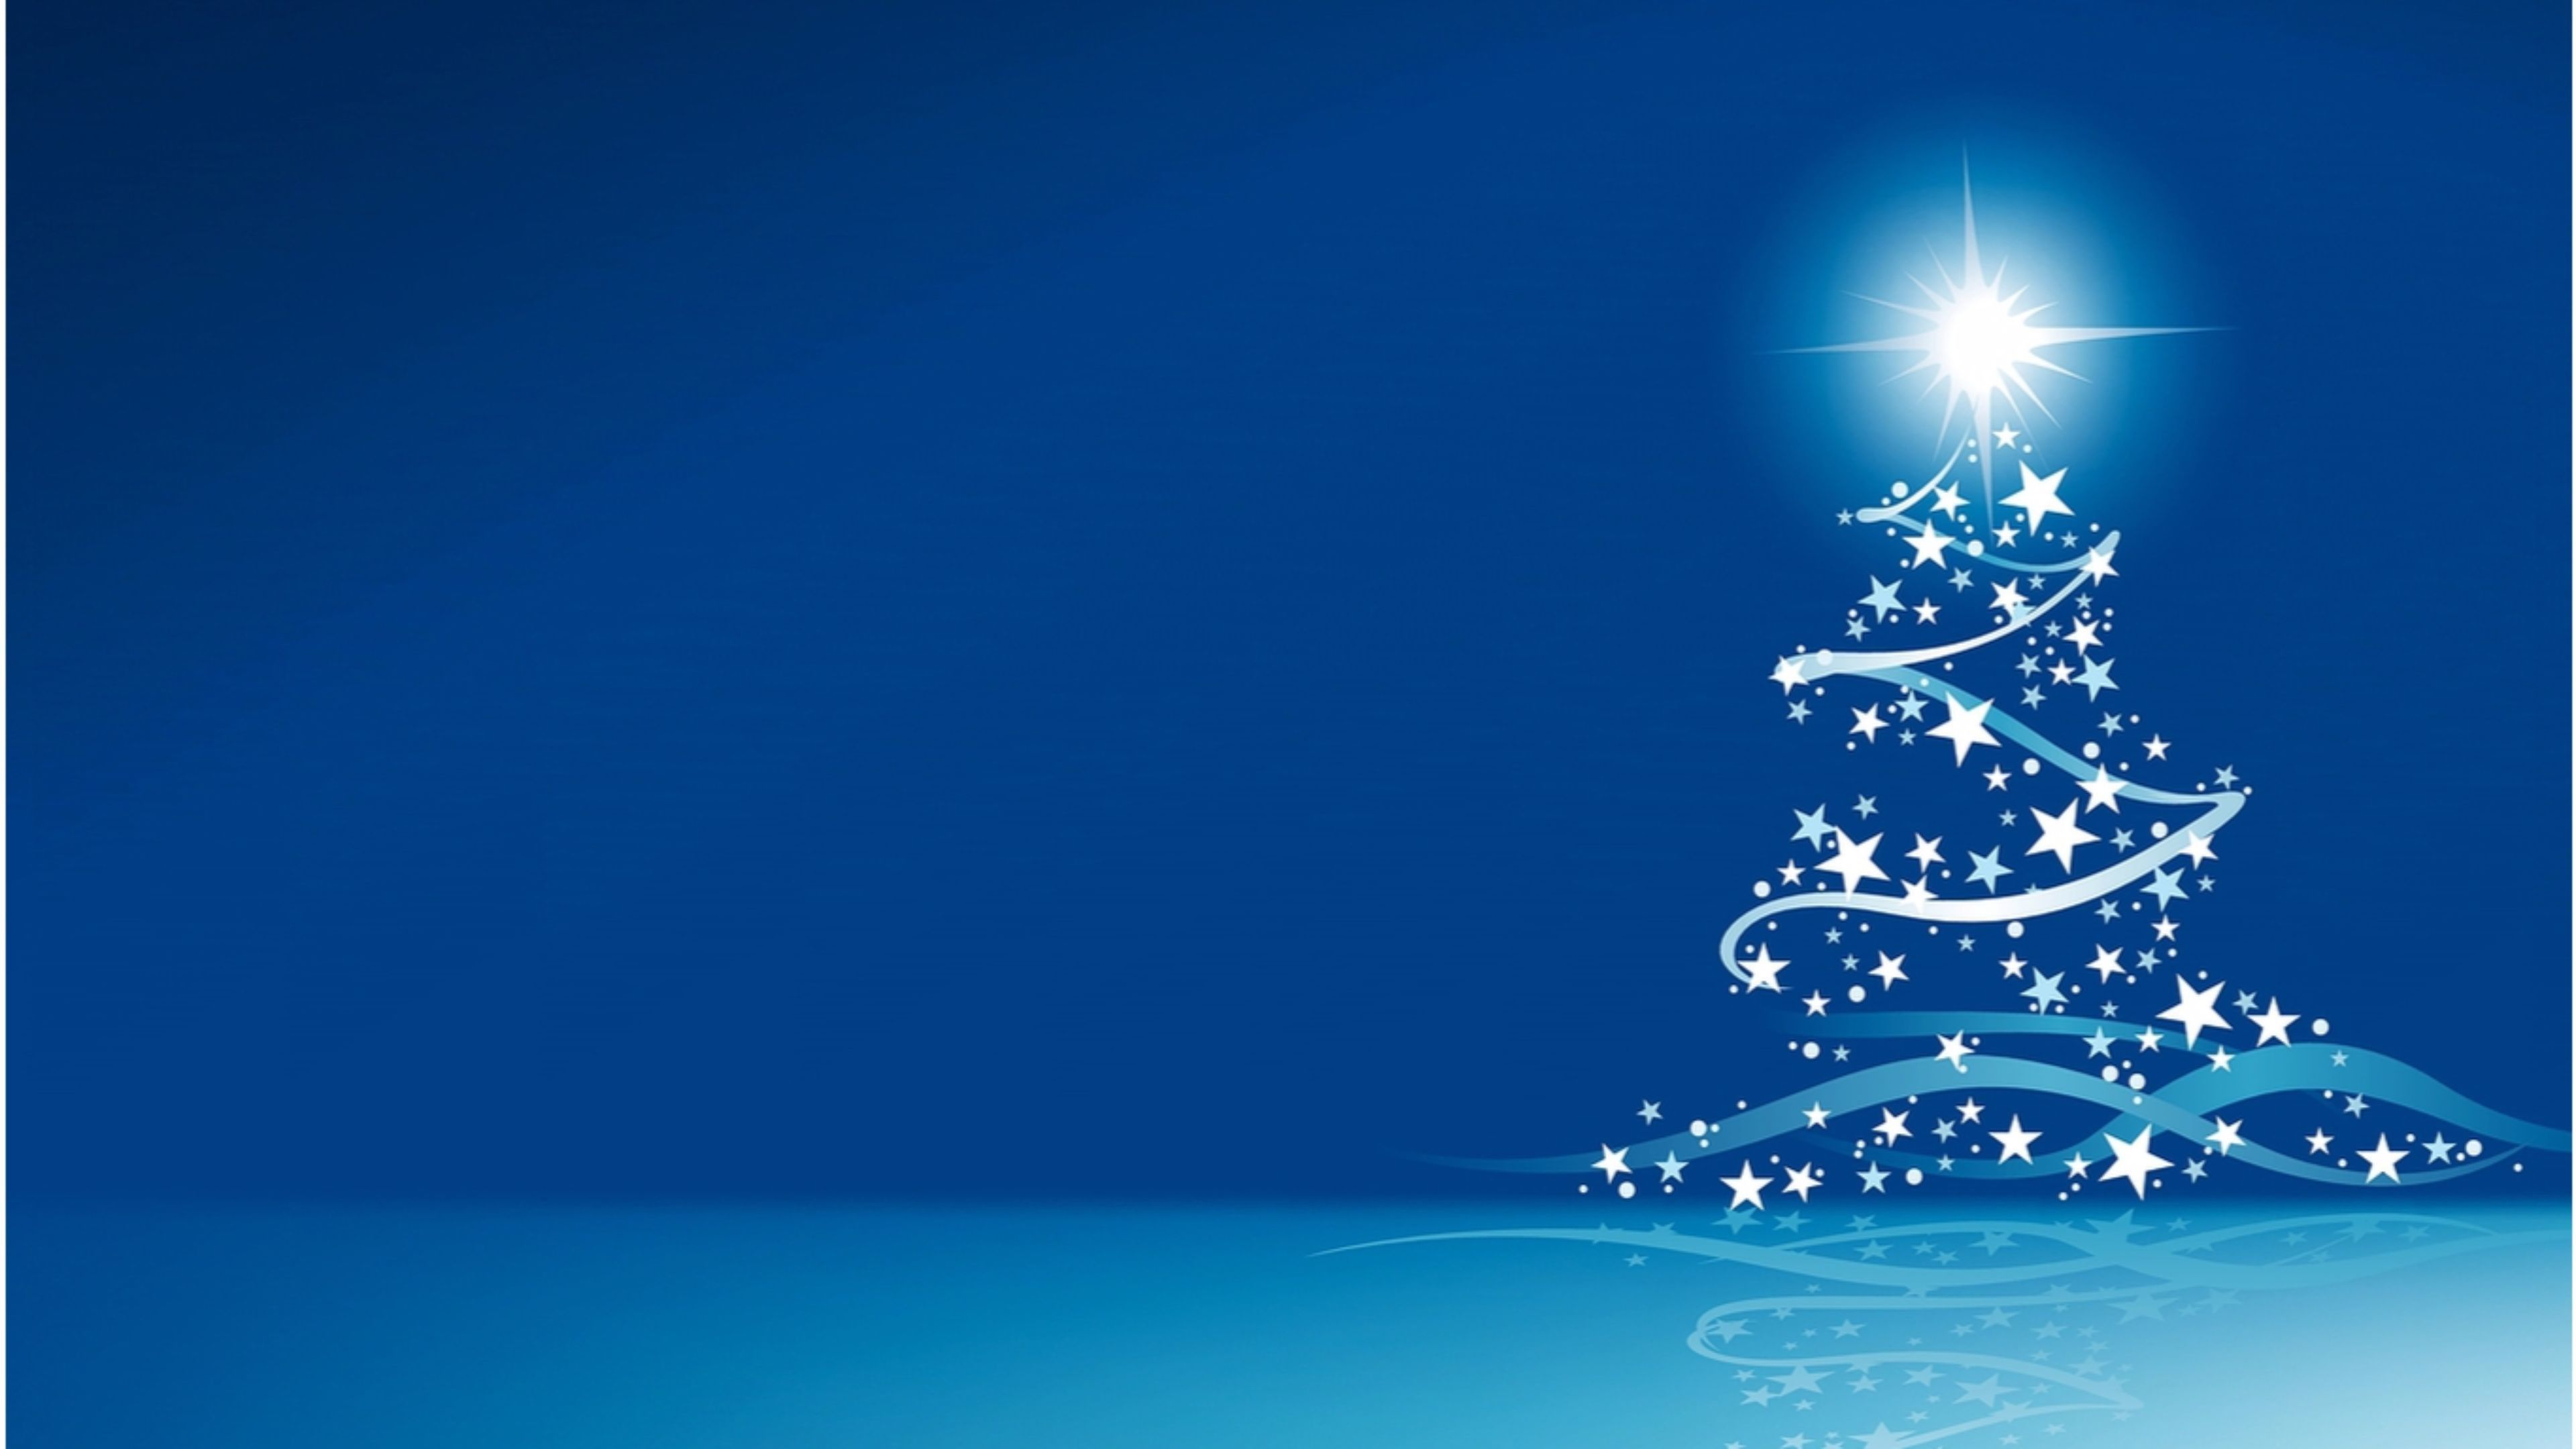 download image in 2020 christmas screen savers blue christmas background christmas background pinterest